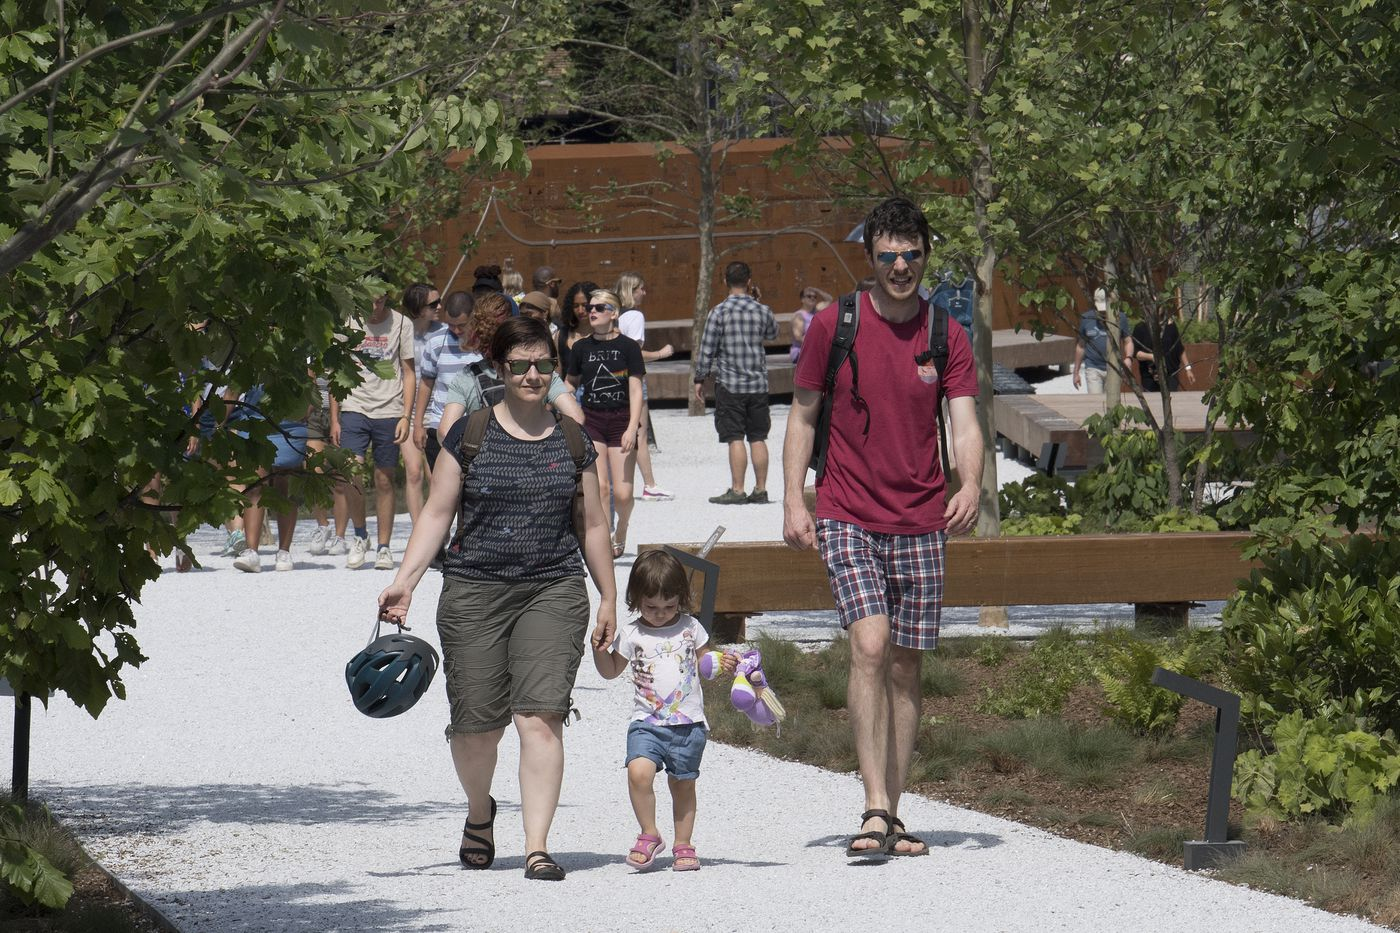 Will Philly's new Rail Park help create neighborhood for all? | Editorial